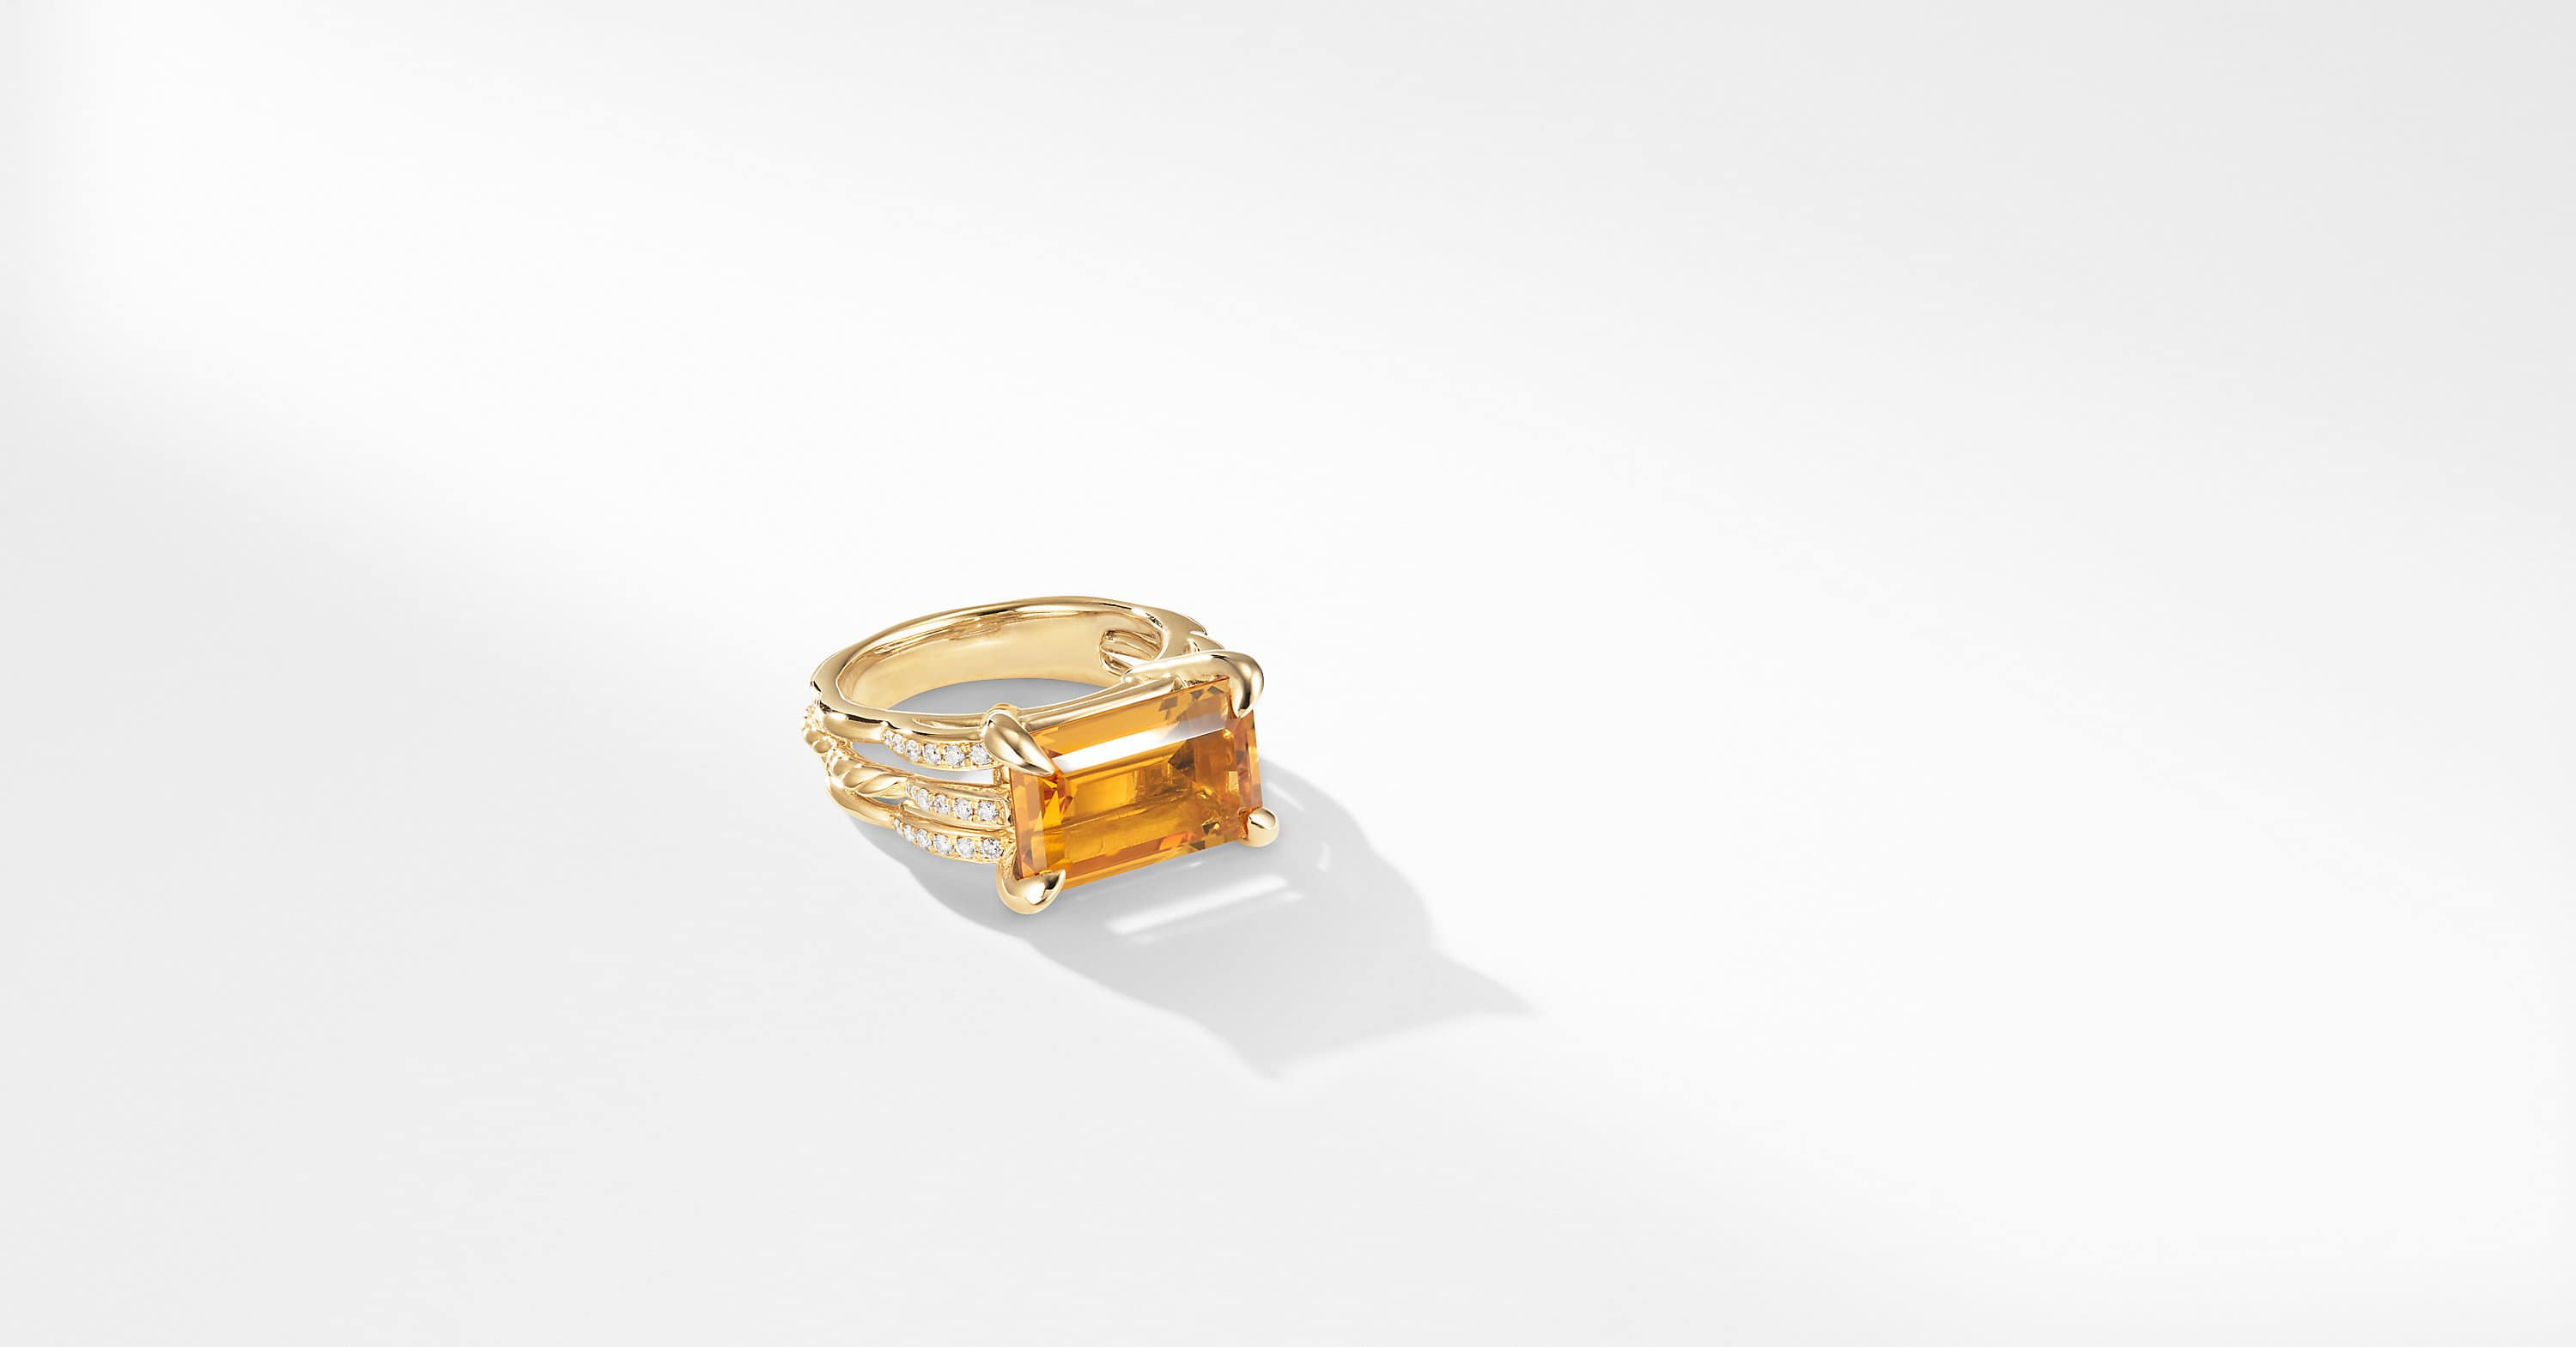 Tides Ring in 18K Yellow Gold with Diamonds